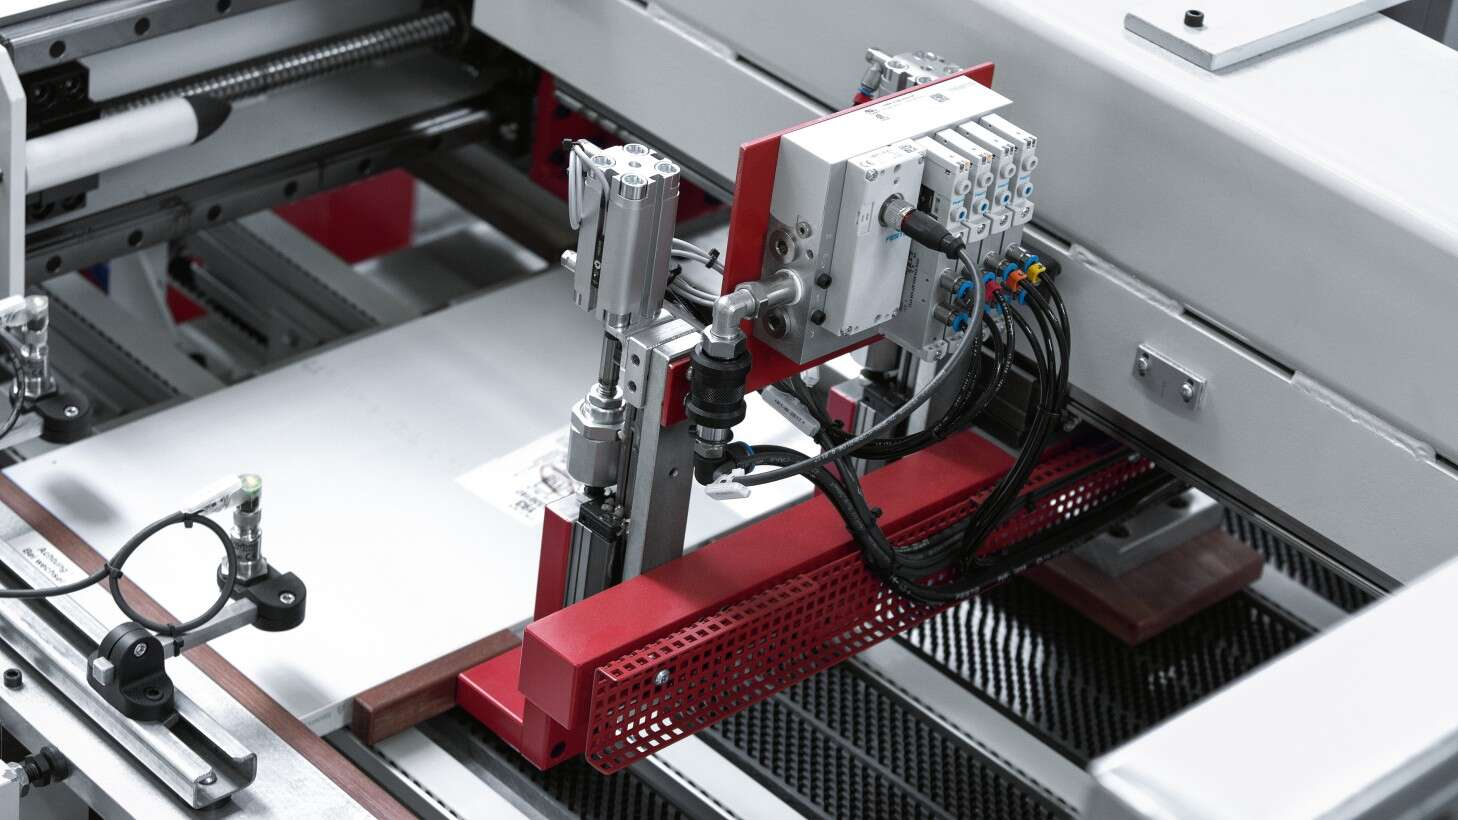 Secure holding and clamping for further processing